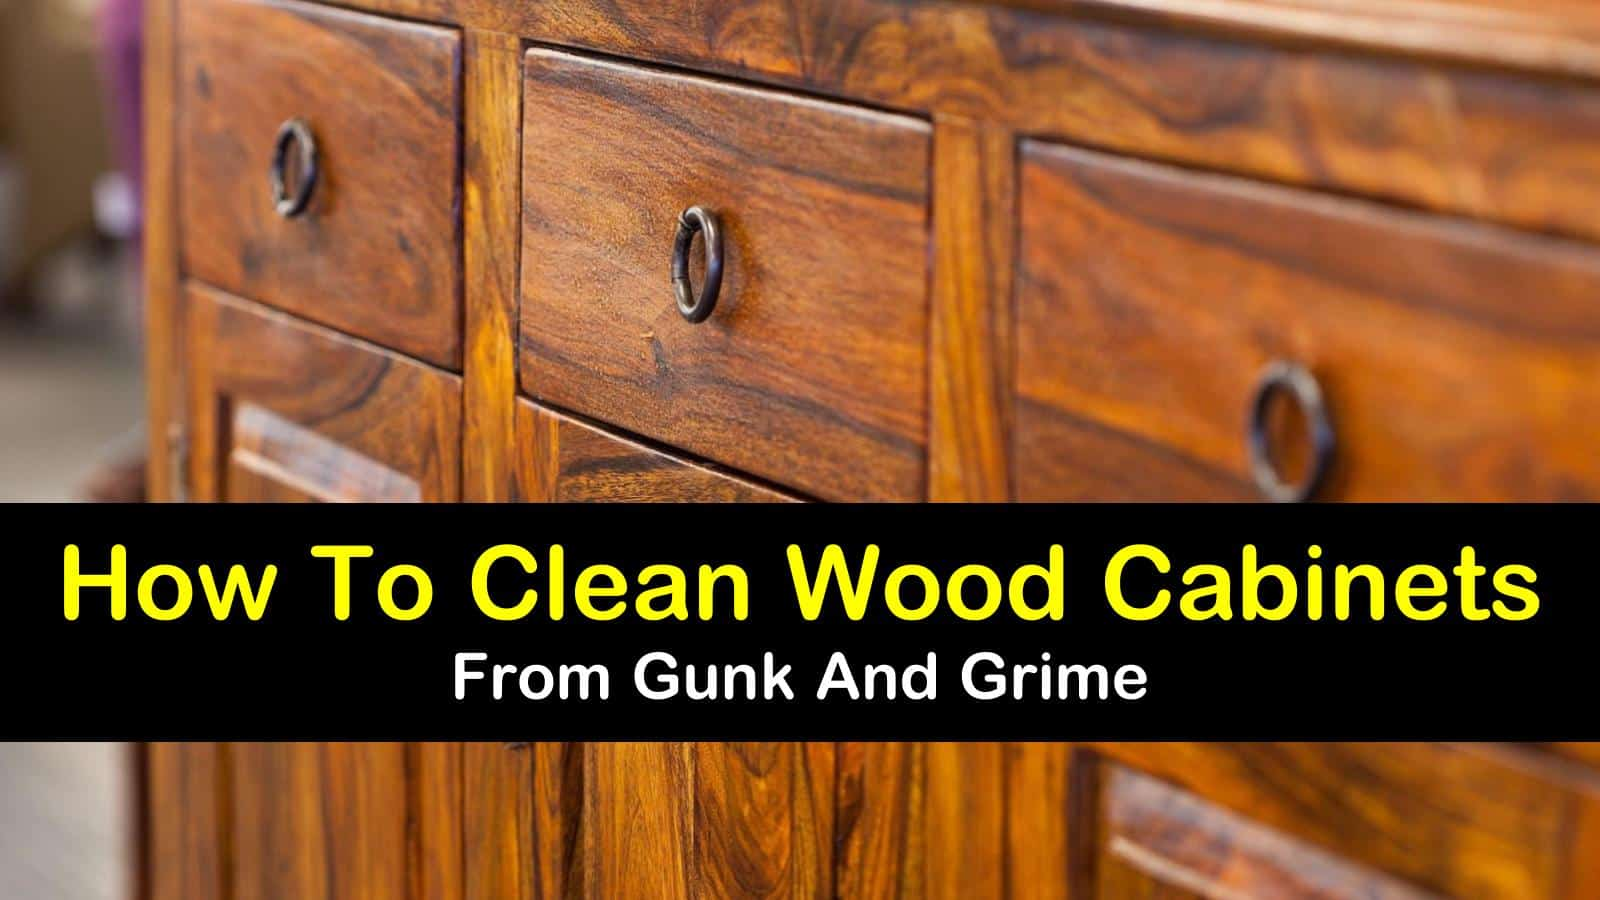 How To Clean Wood Cabinets From Gunk And Grime The Ultimate Guide